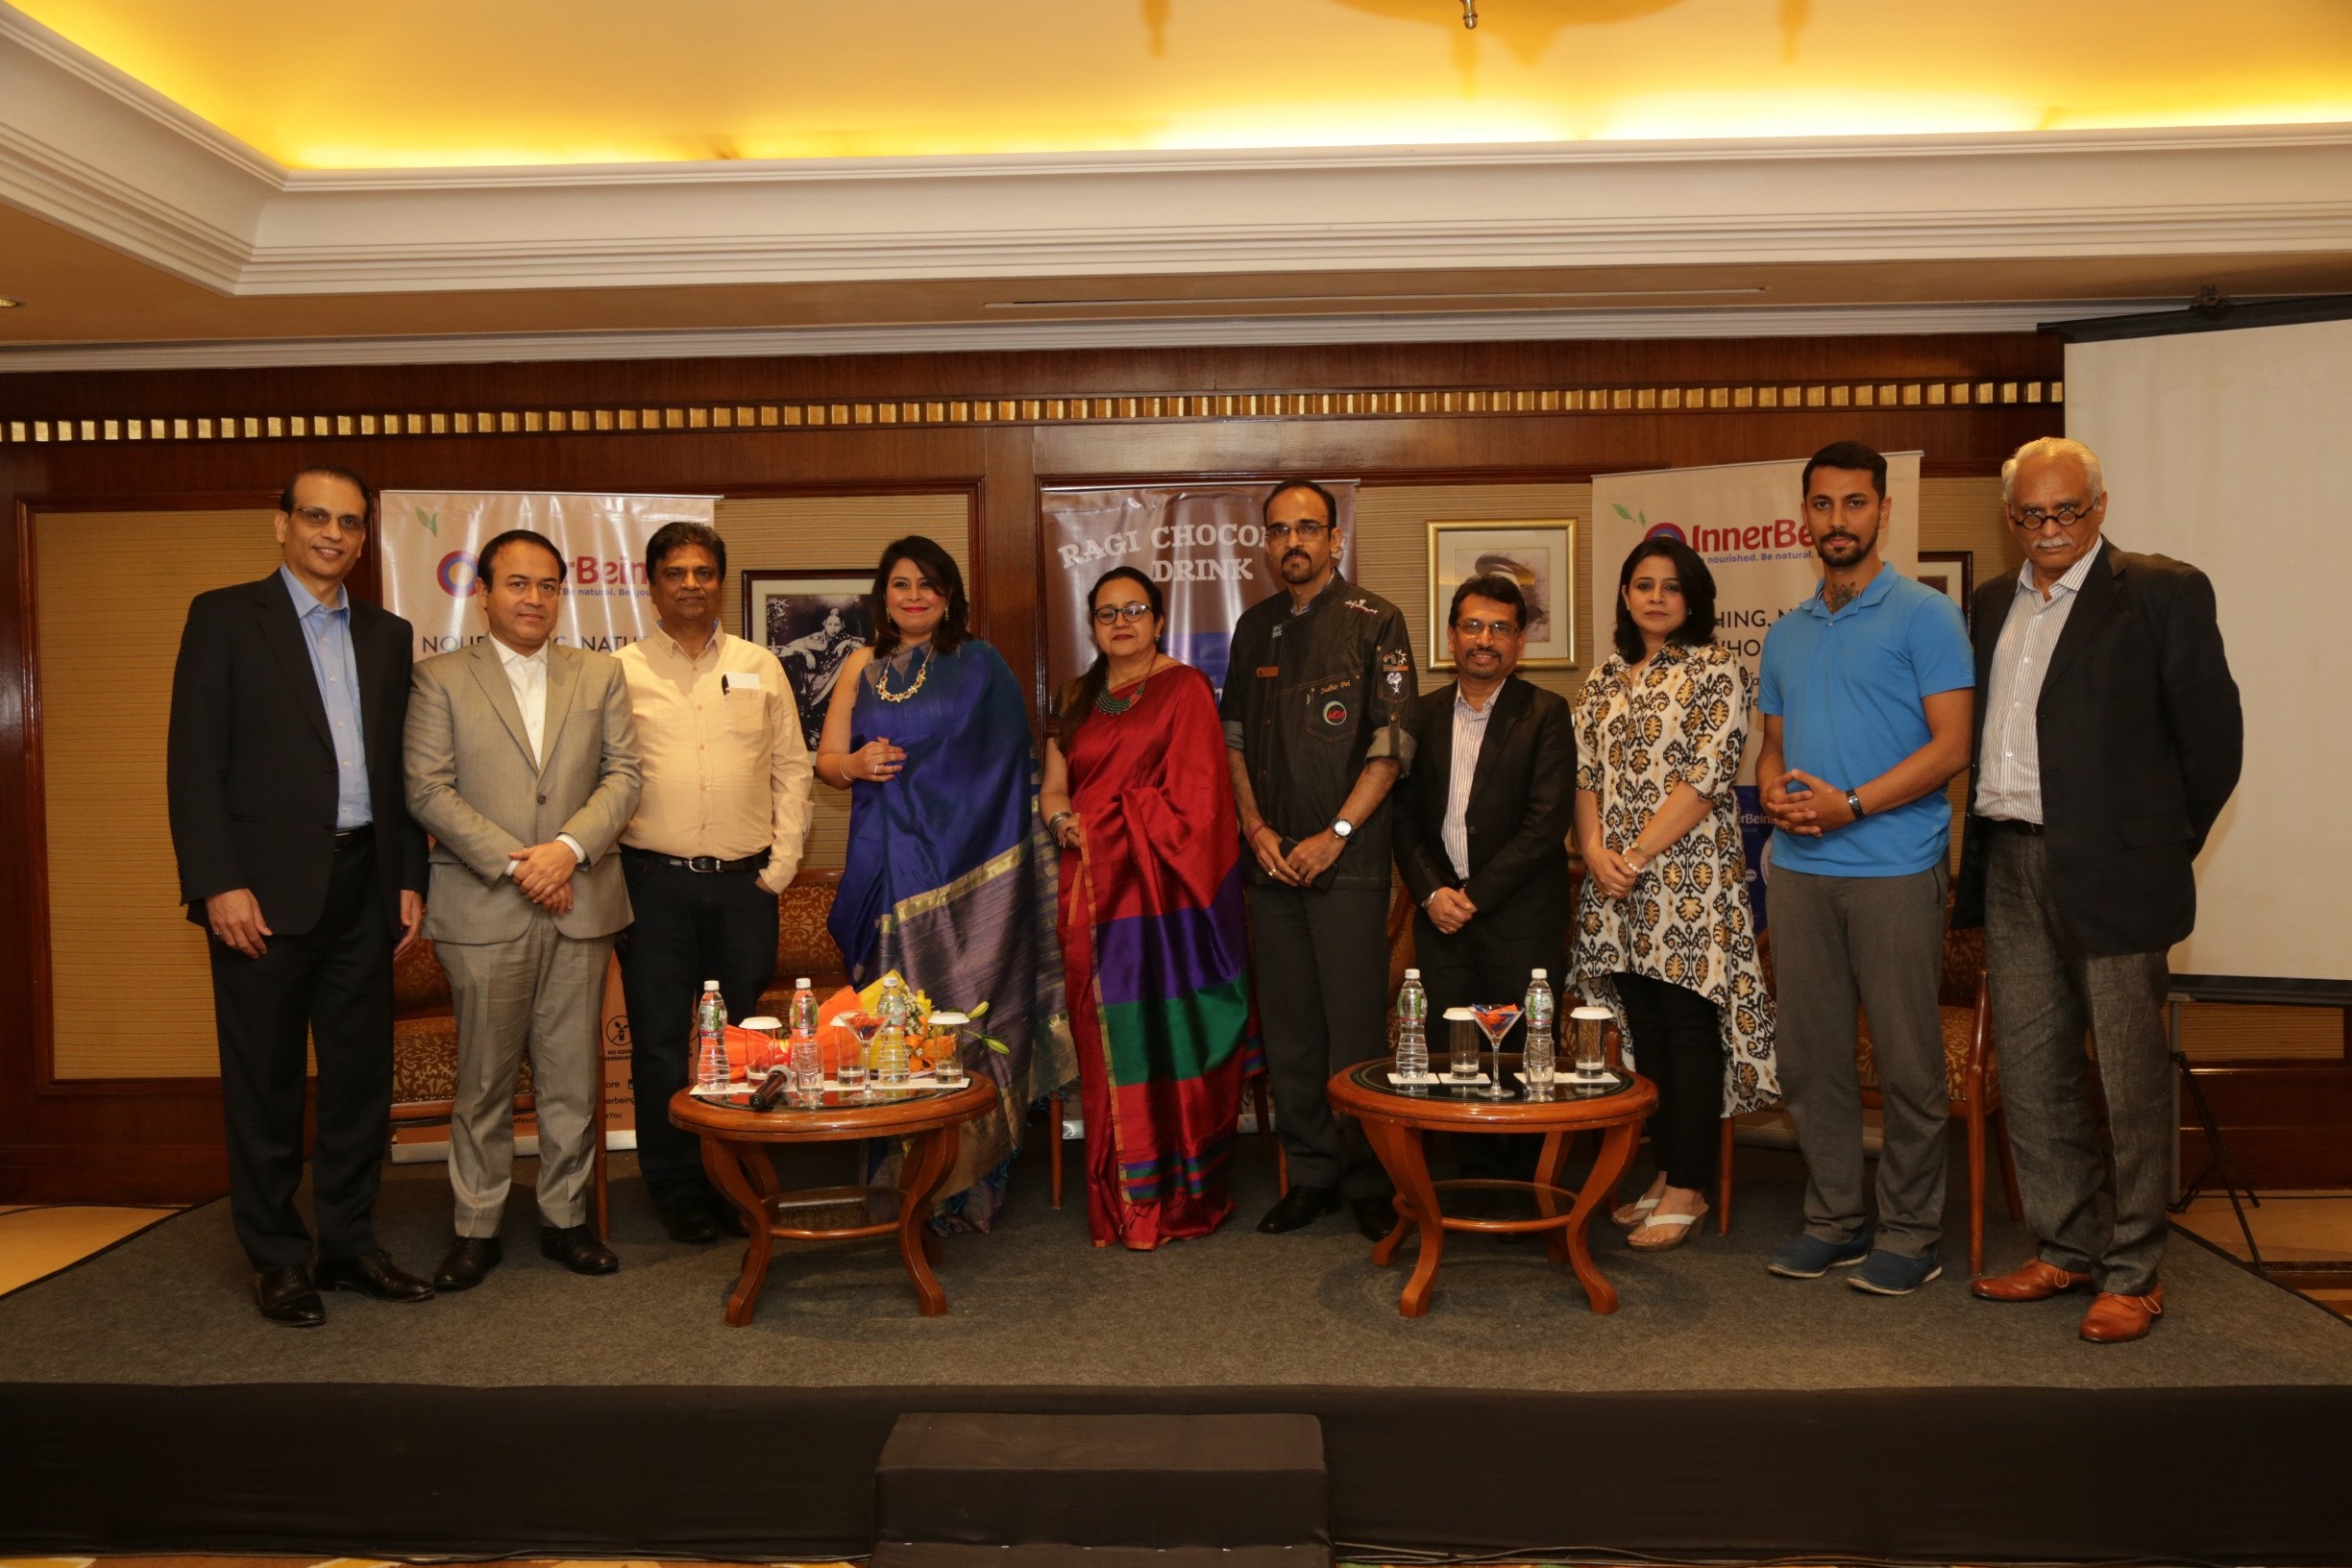 InnerBeing Formally Launched in Mumbai celebrating Ancient Grains